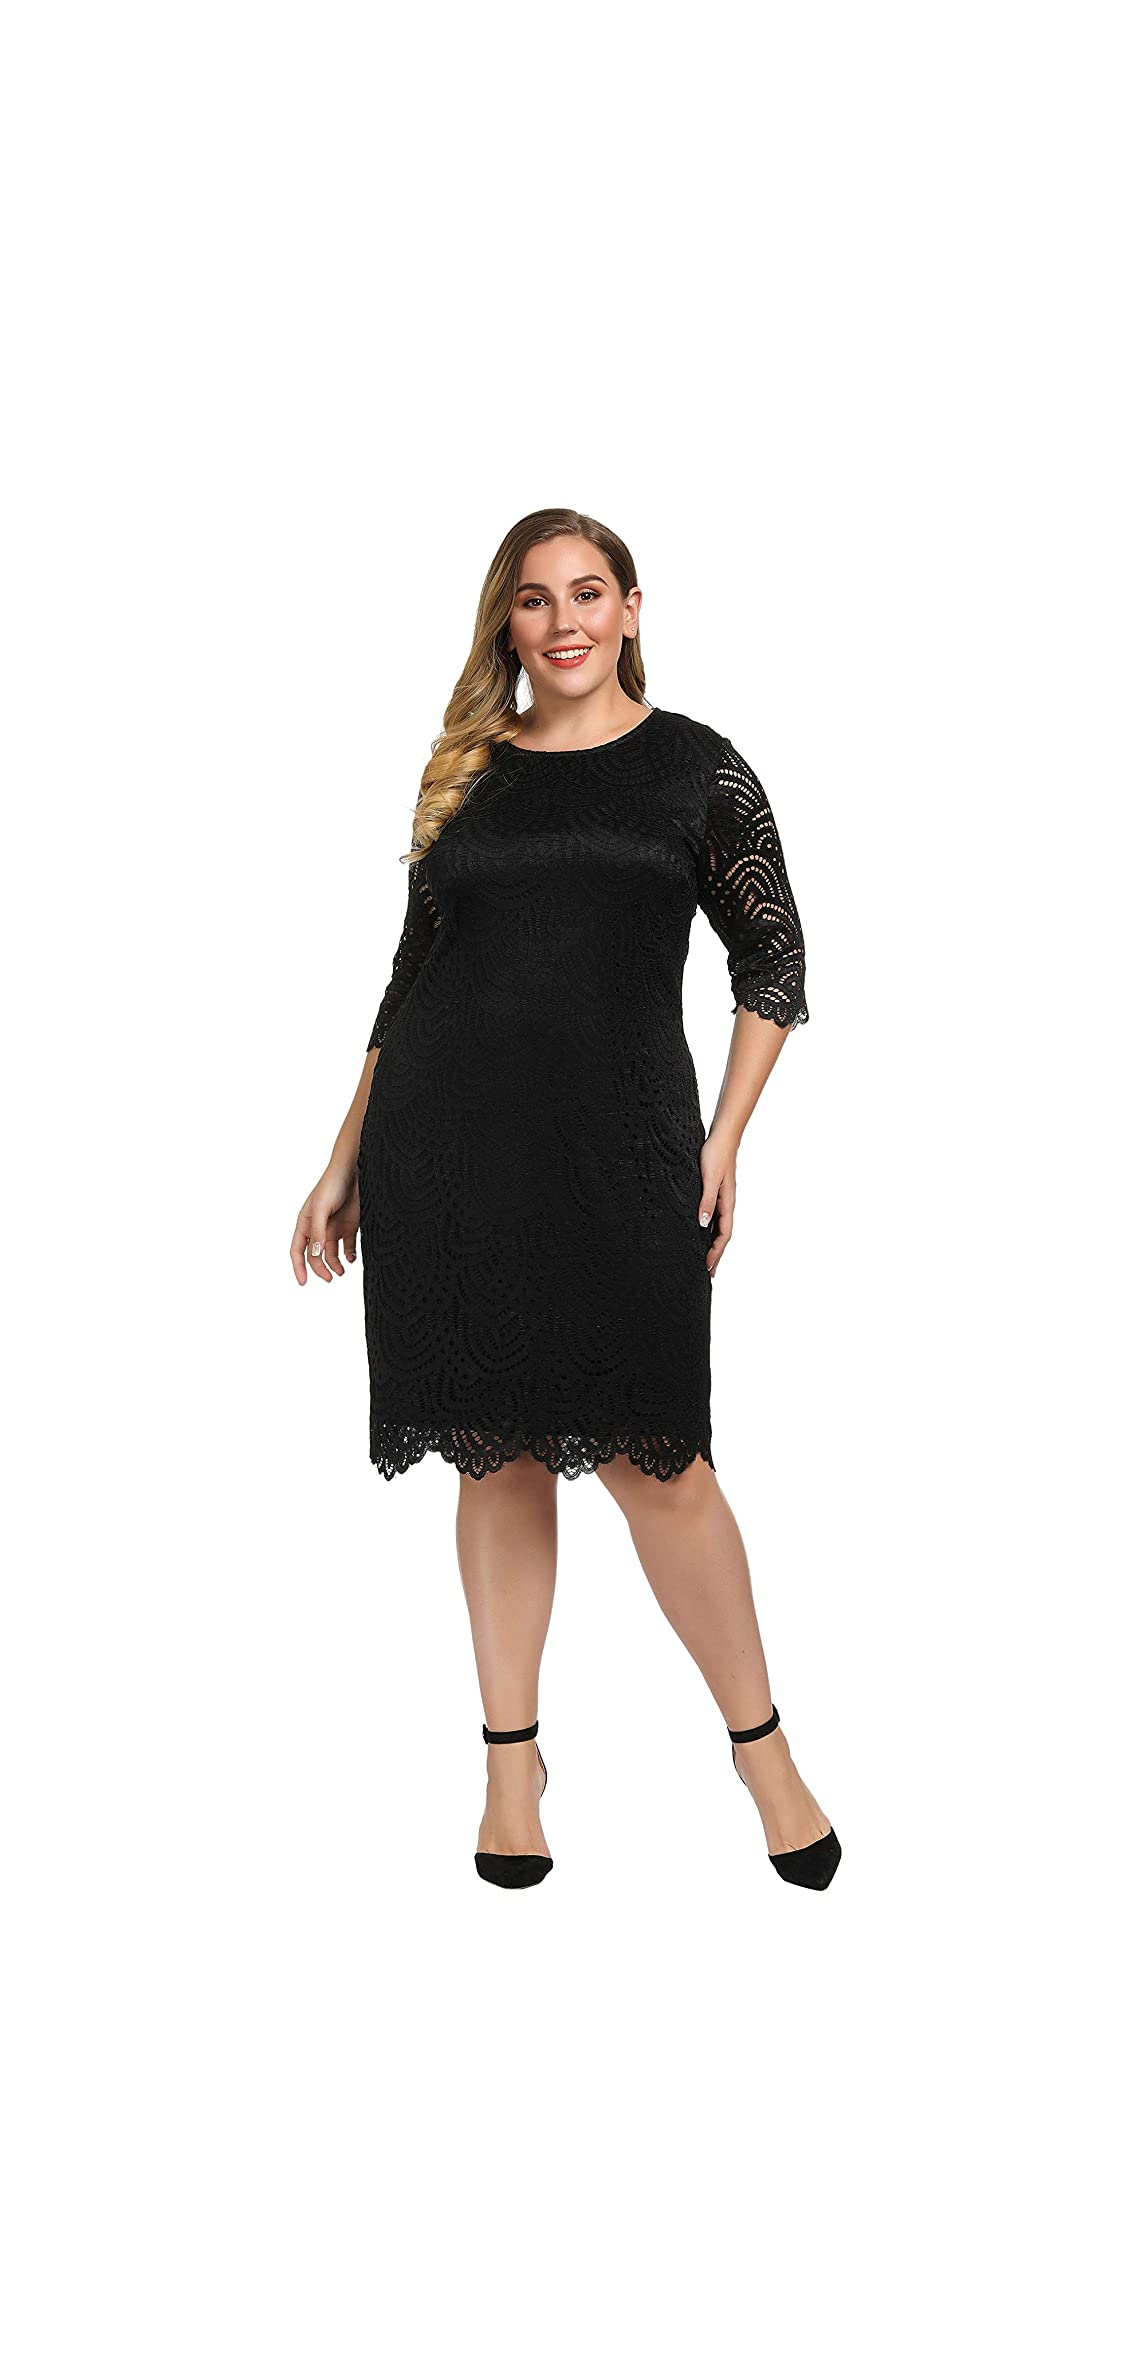 Women's Stretch Lined Plus Size Lace Shift Dress Knee Hem